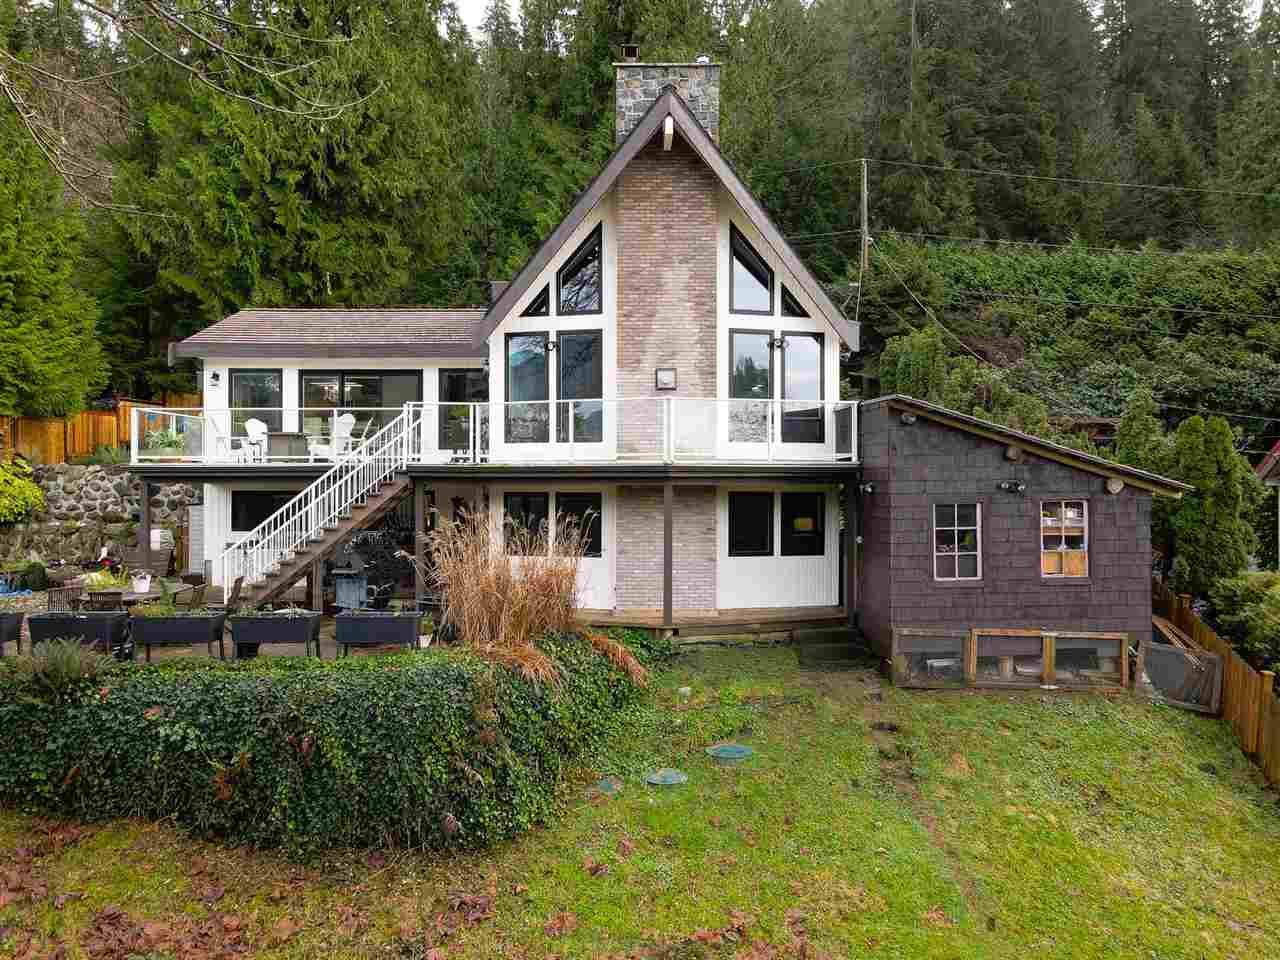 4103 BEDWELL BAY ROAD - Belcarra House/Single Family for sale, 5 Bedrooms (R2528264) - #22